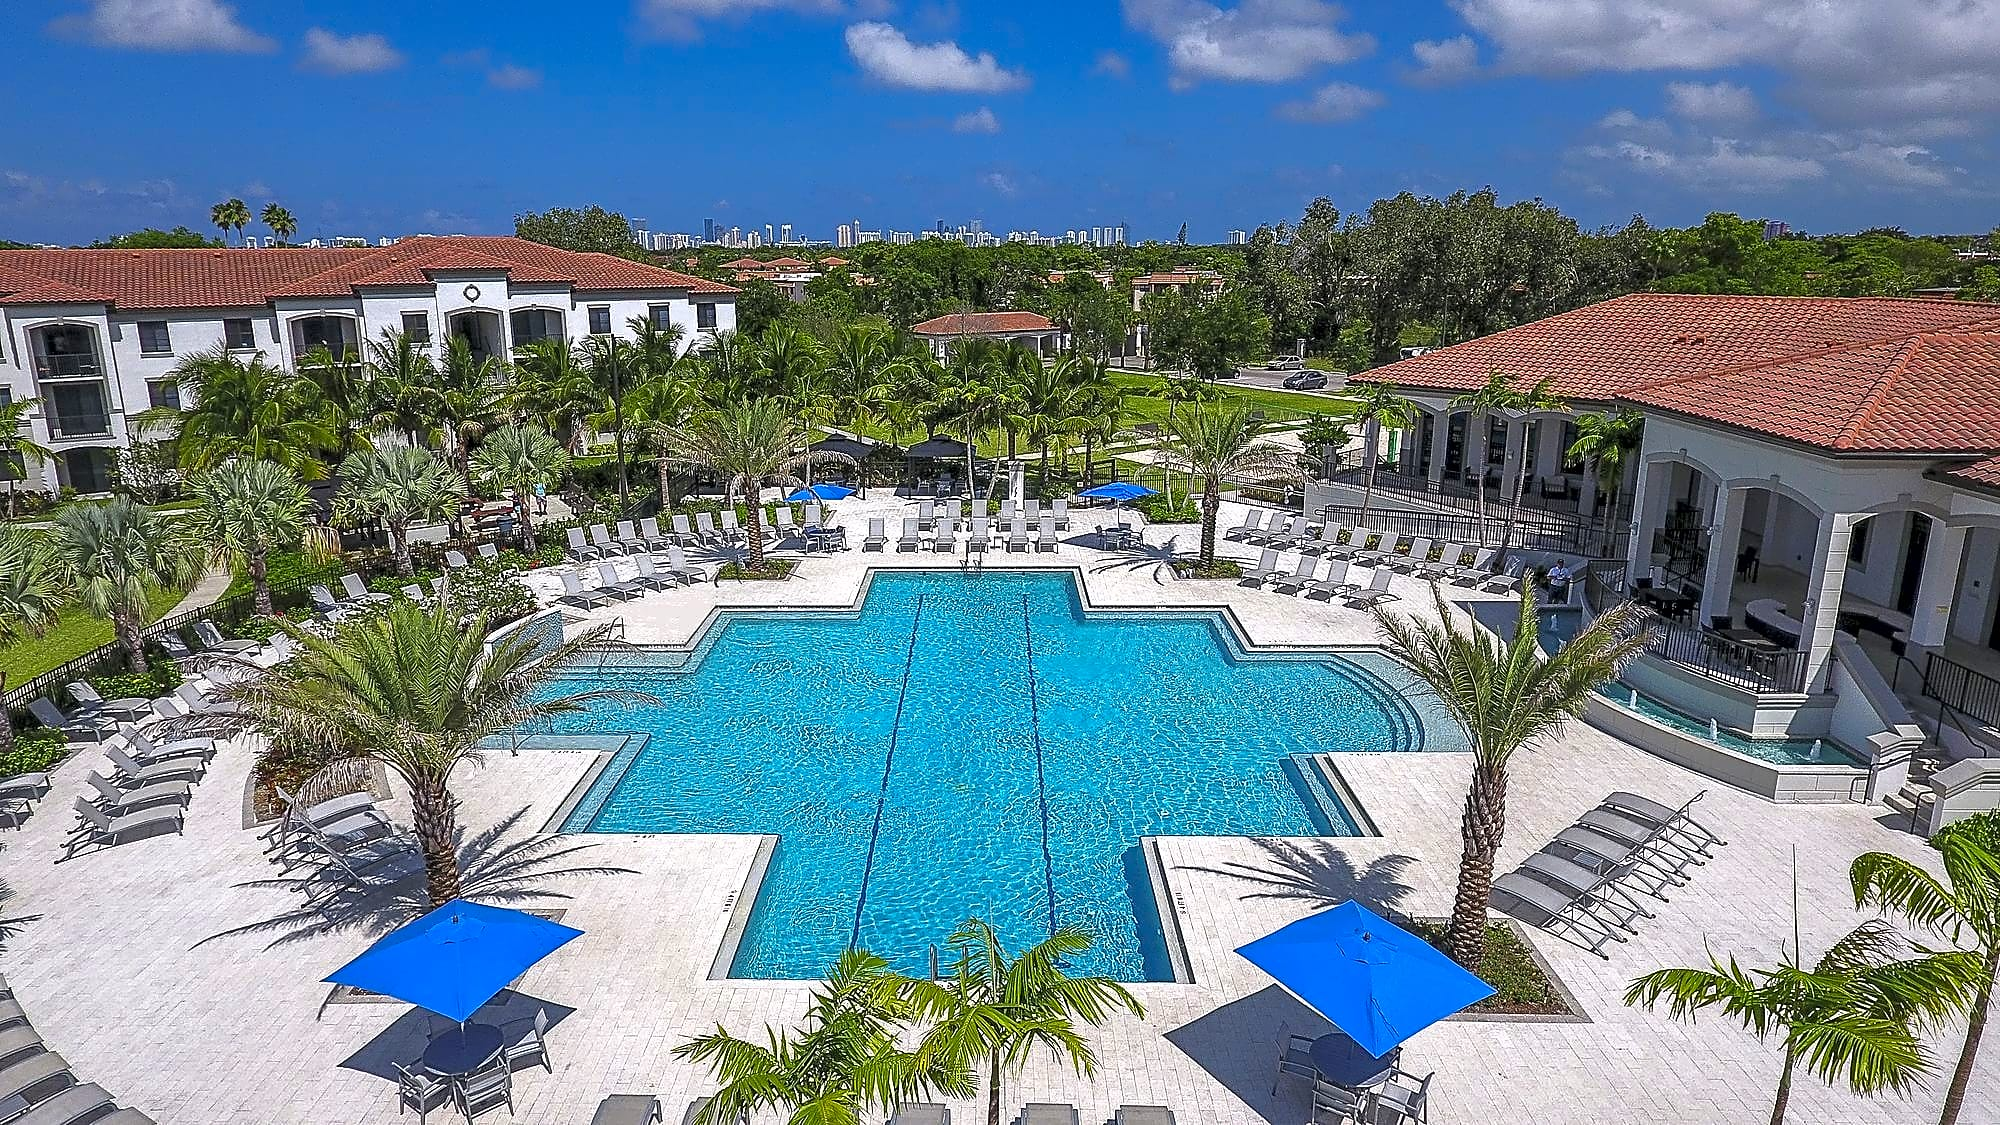 Apartments Near Barry MiLa for Barry University Students in Miami Shores, FL